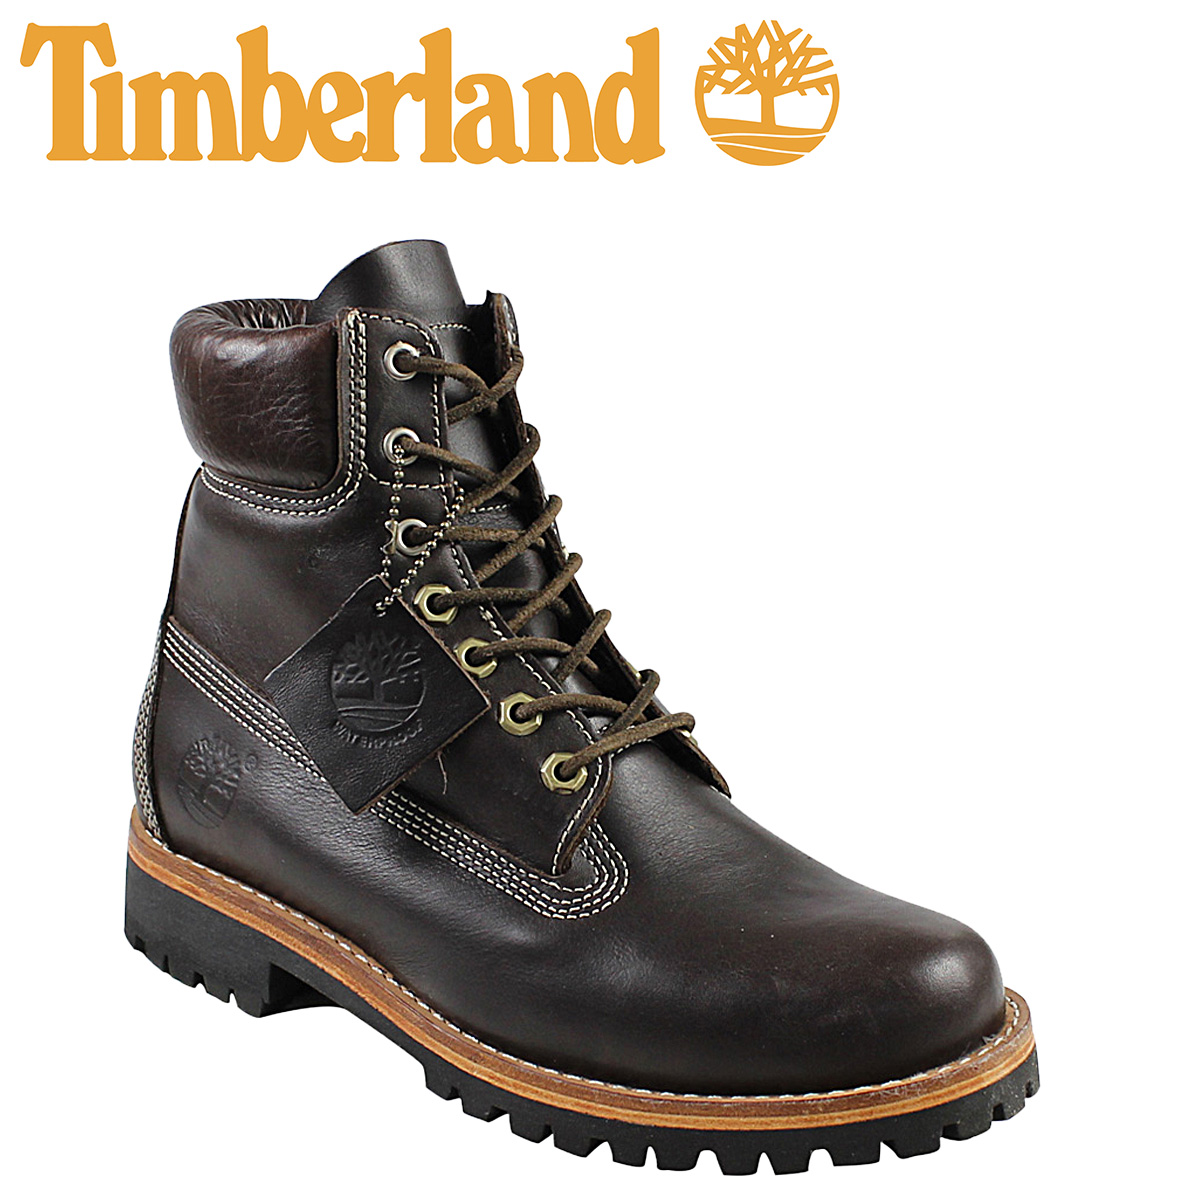 Whats Up Sports Timberland Boots Heritage Rugged Boot 6848a W Wise Waterproof Mens Rakuten Global Market